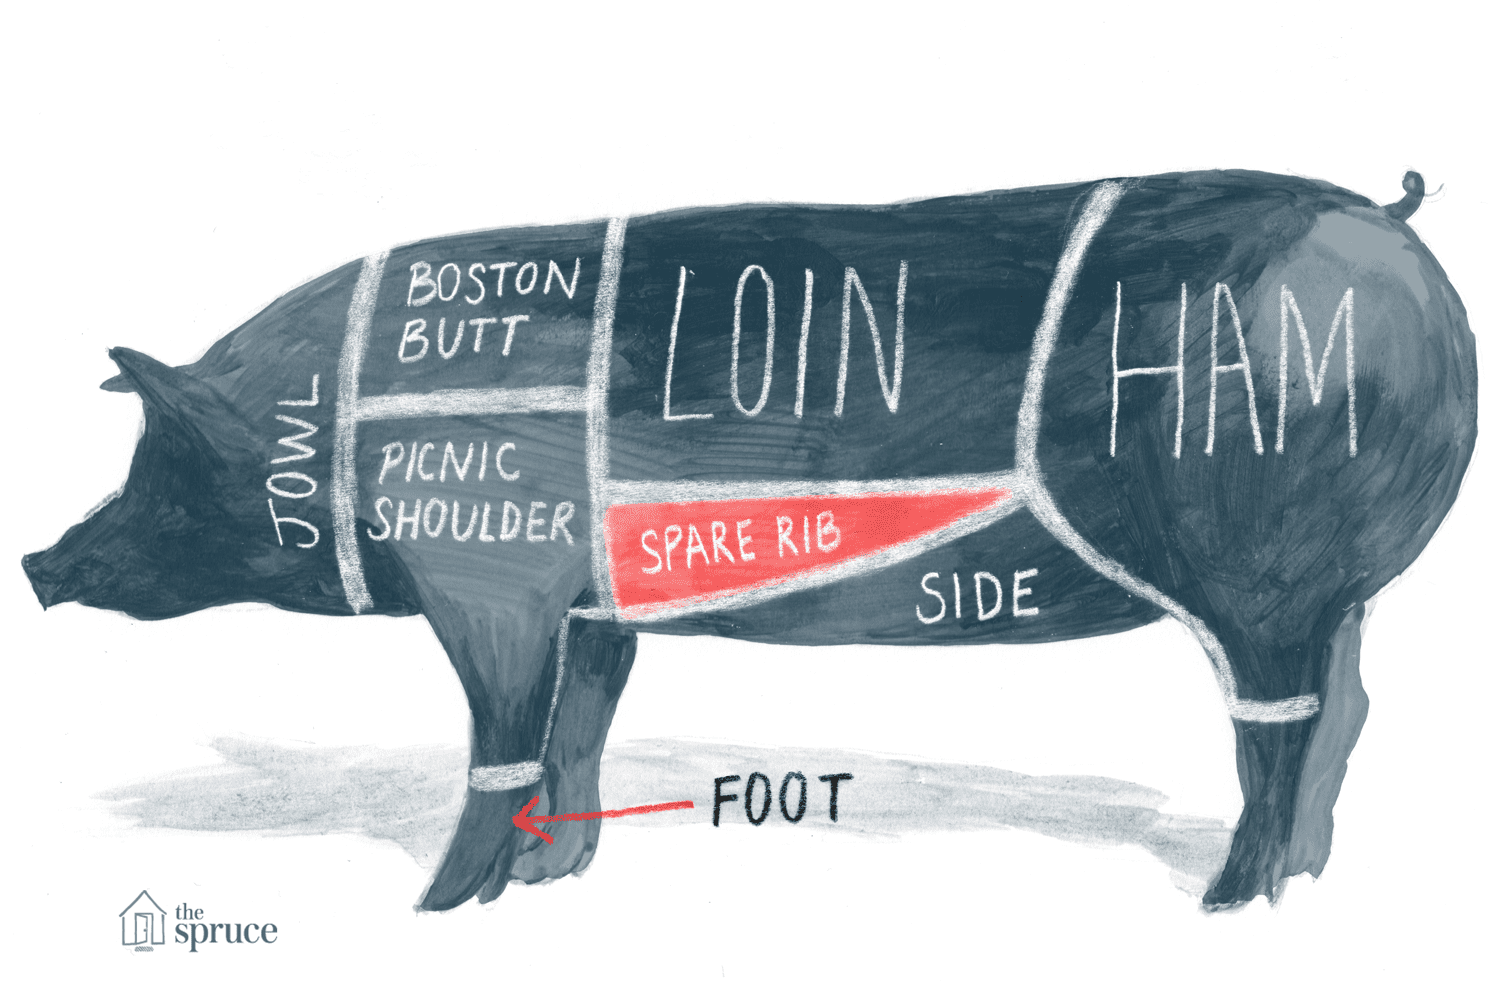 Illustrated diagram of the cuts of pork - highlighting the spare rib